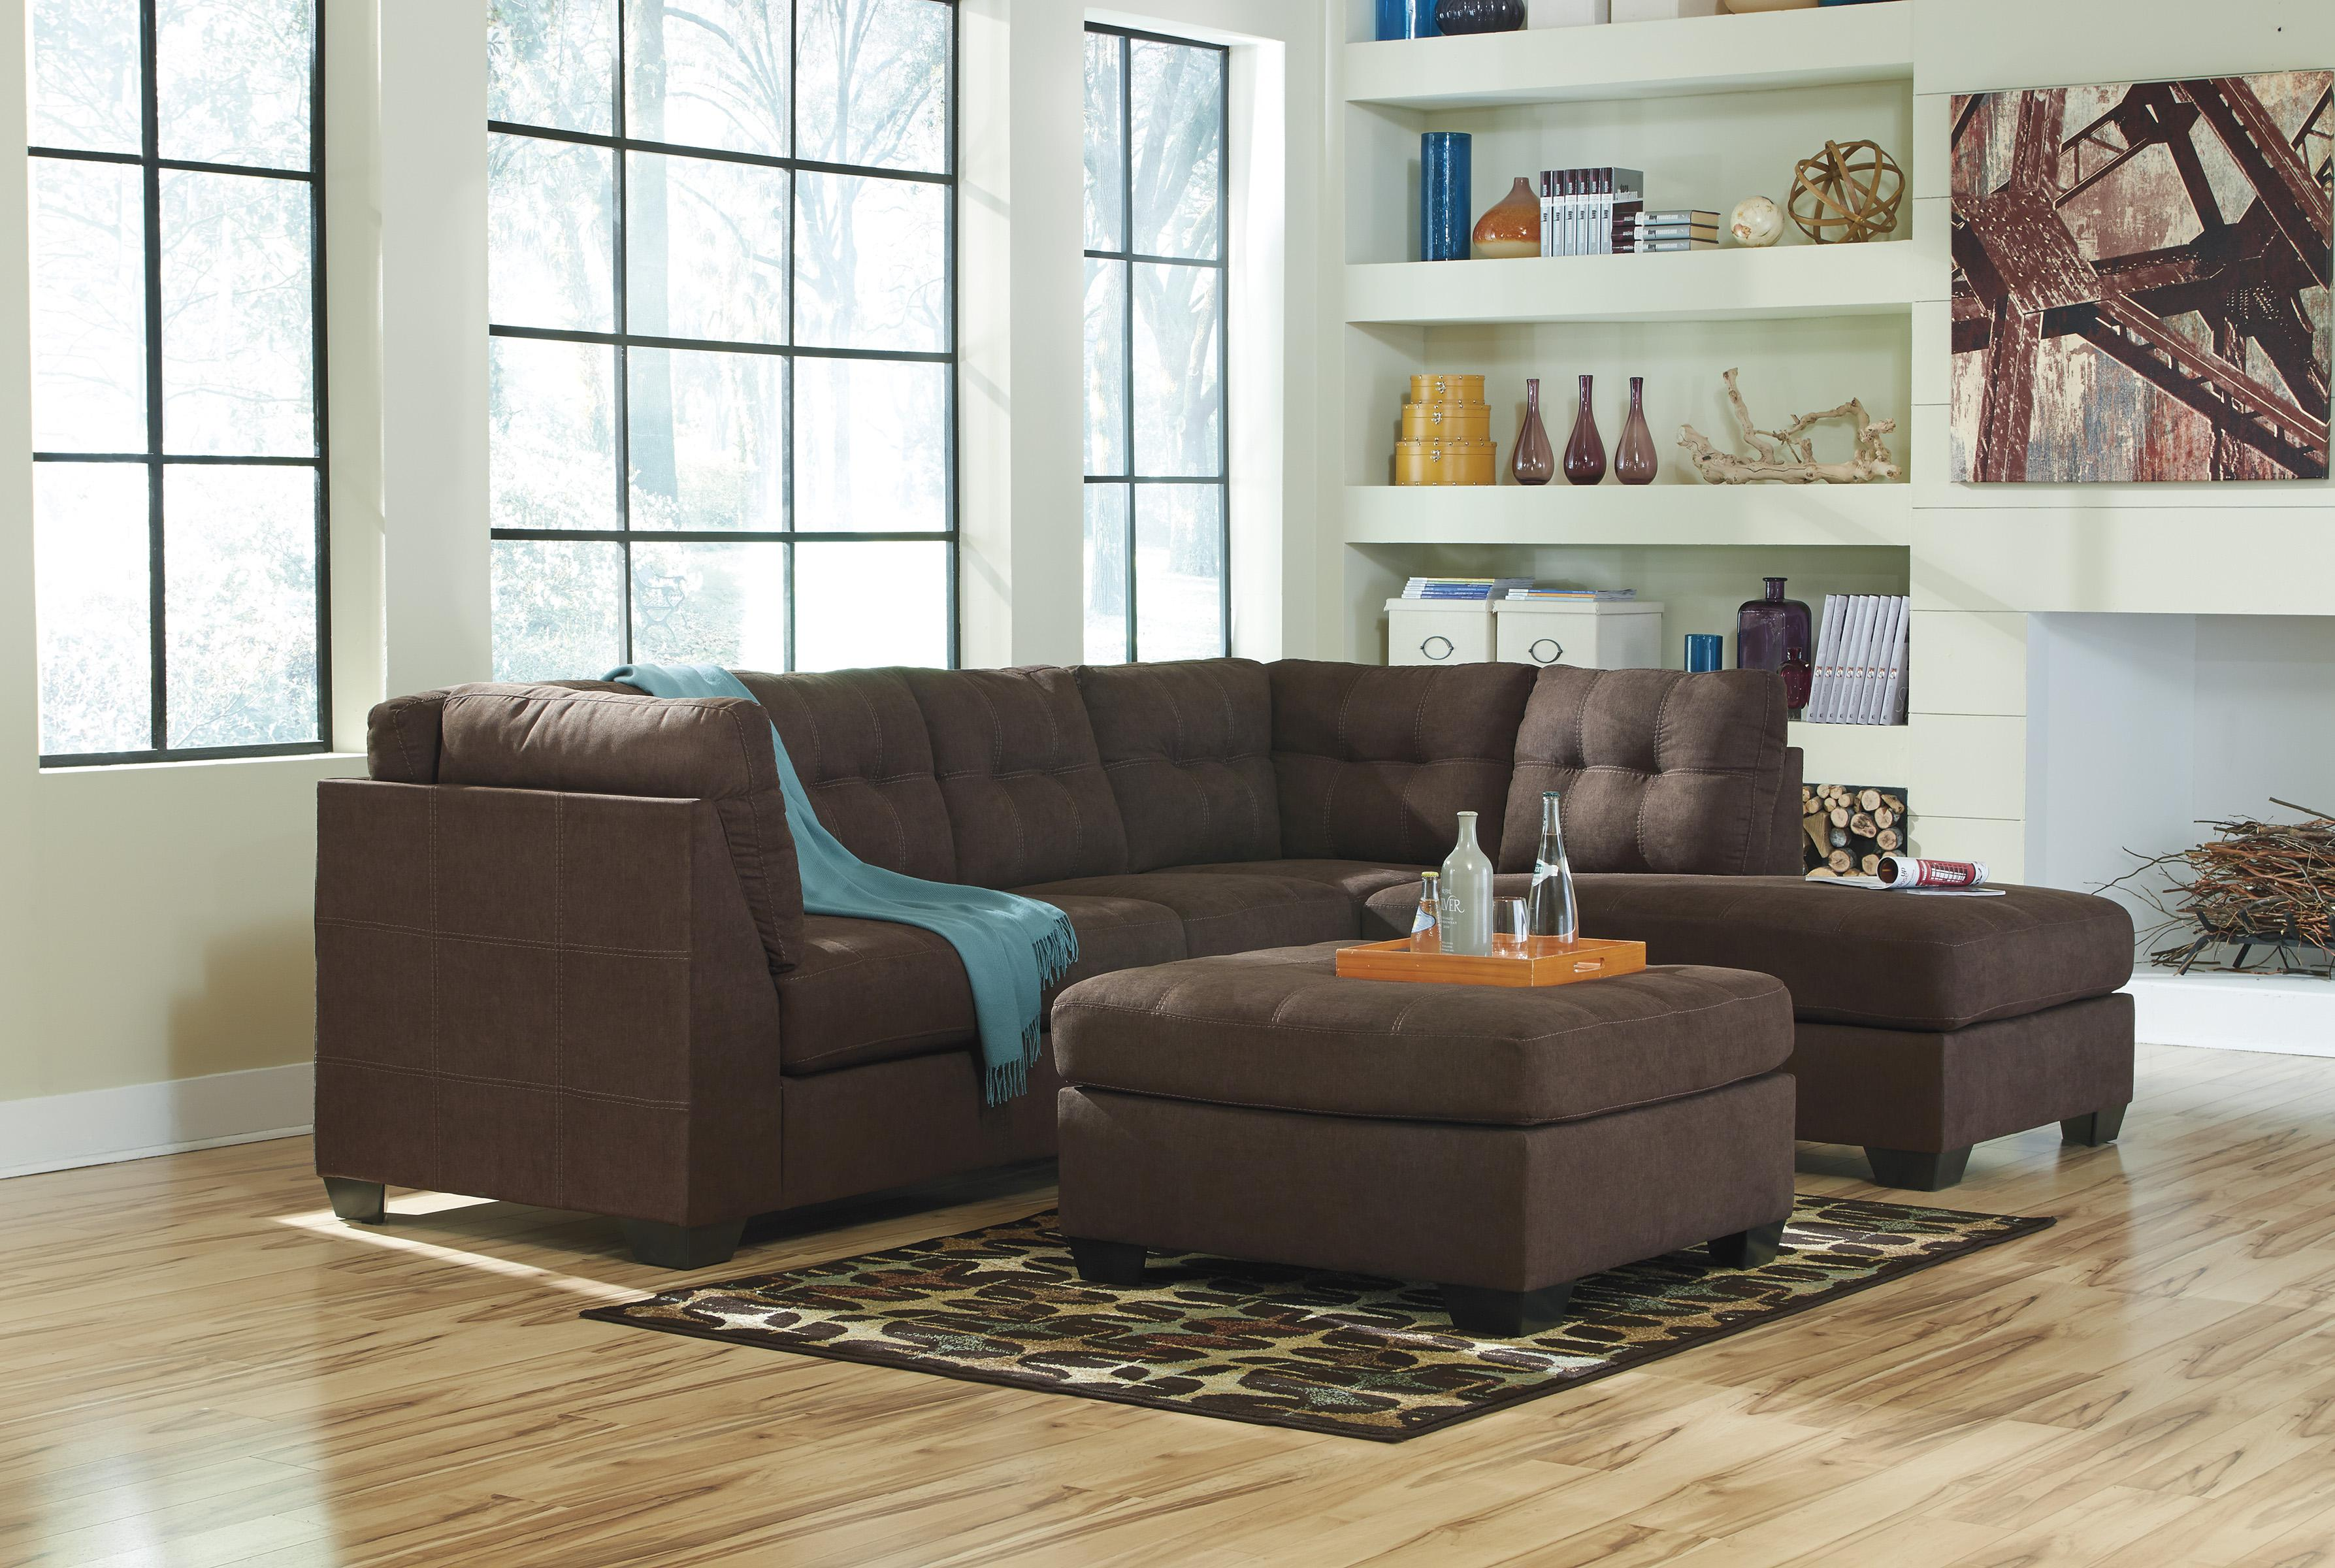 Maier - Walnut Stationary Living Room Group by Benchcraft at Northeast Factory Direct